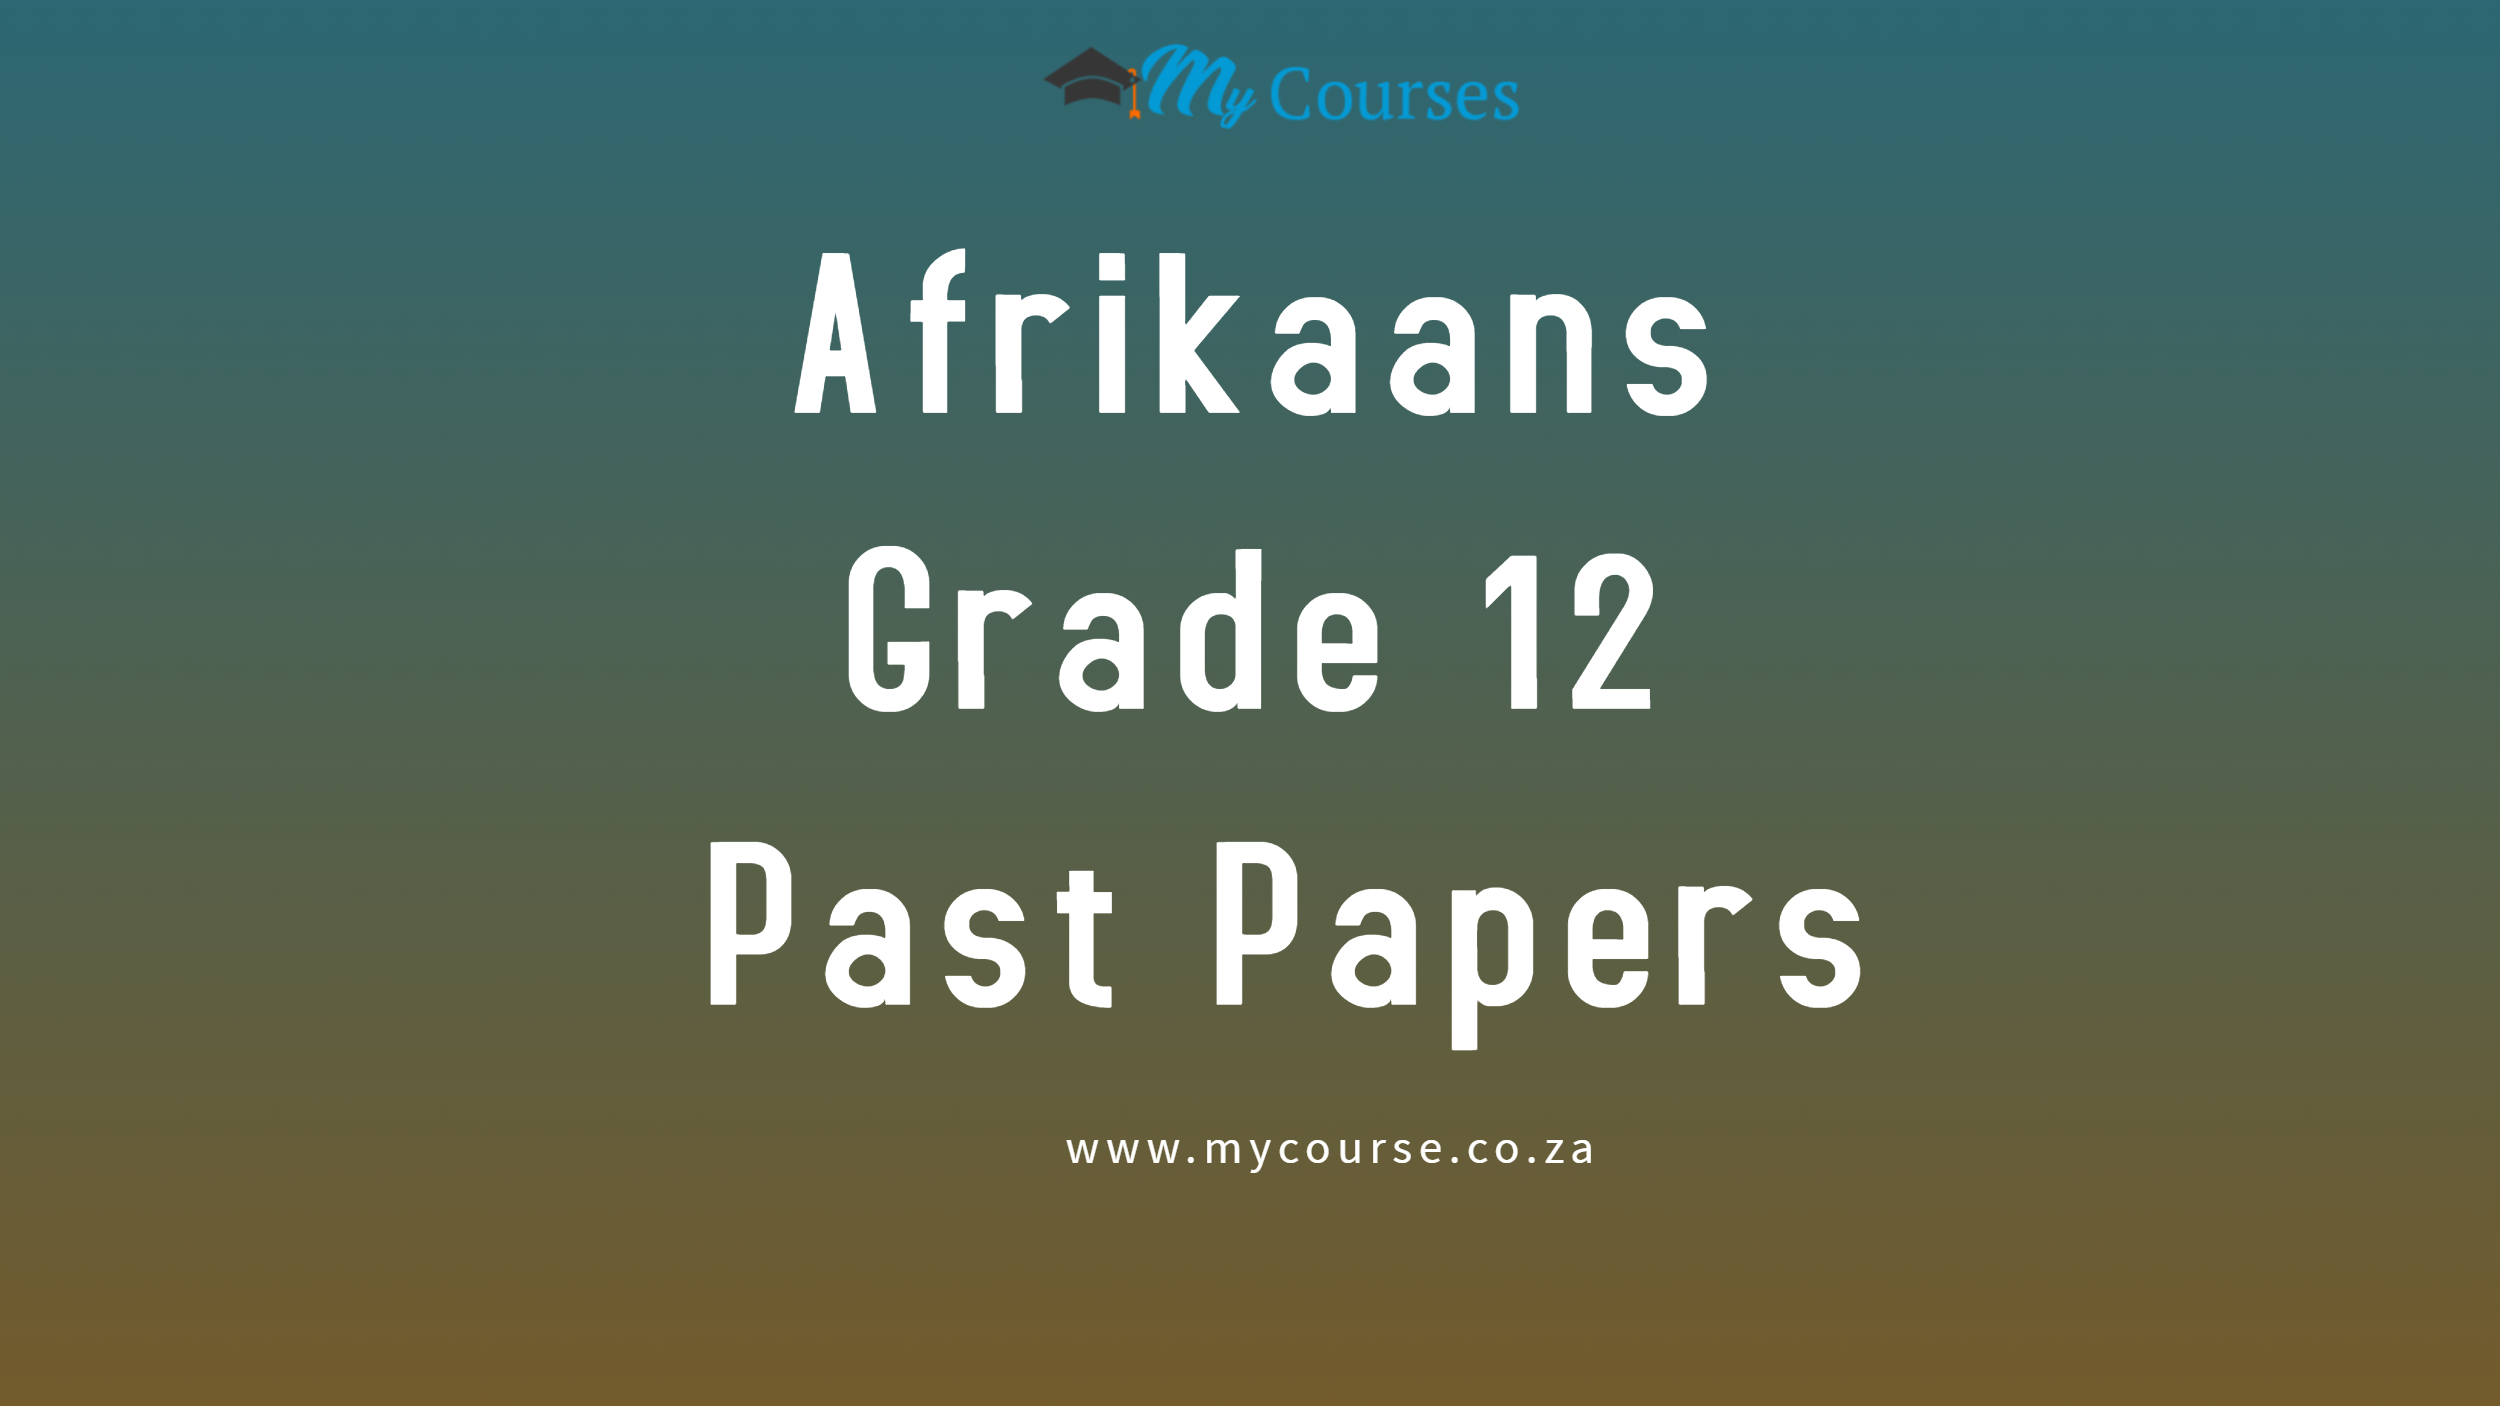 Afrikaans Grade 12 Home Language Past Exam Papers and Memos for 2020 and 2019